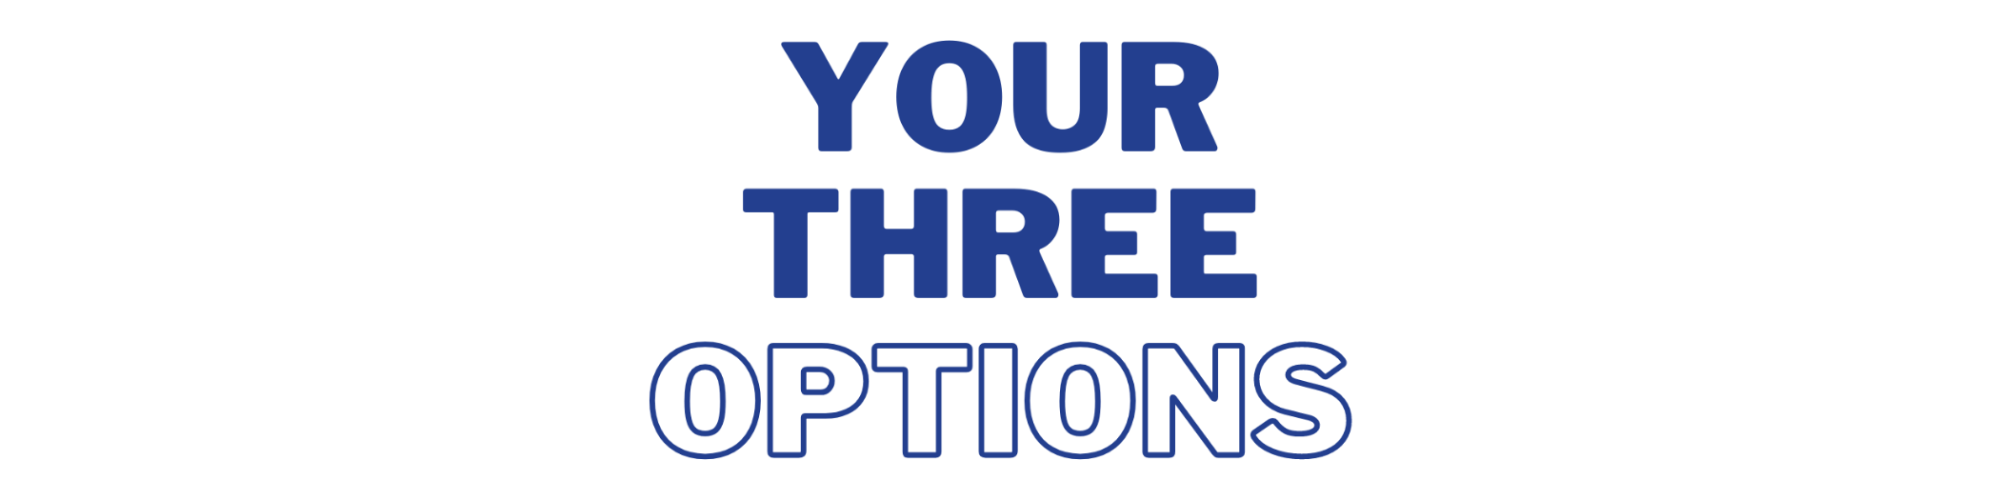 Your Three Options Title